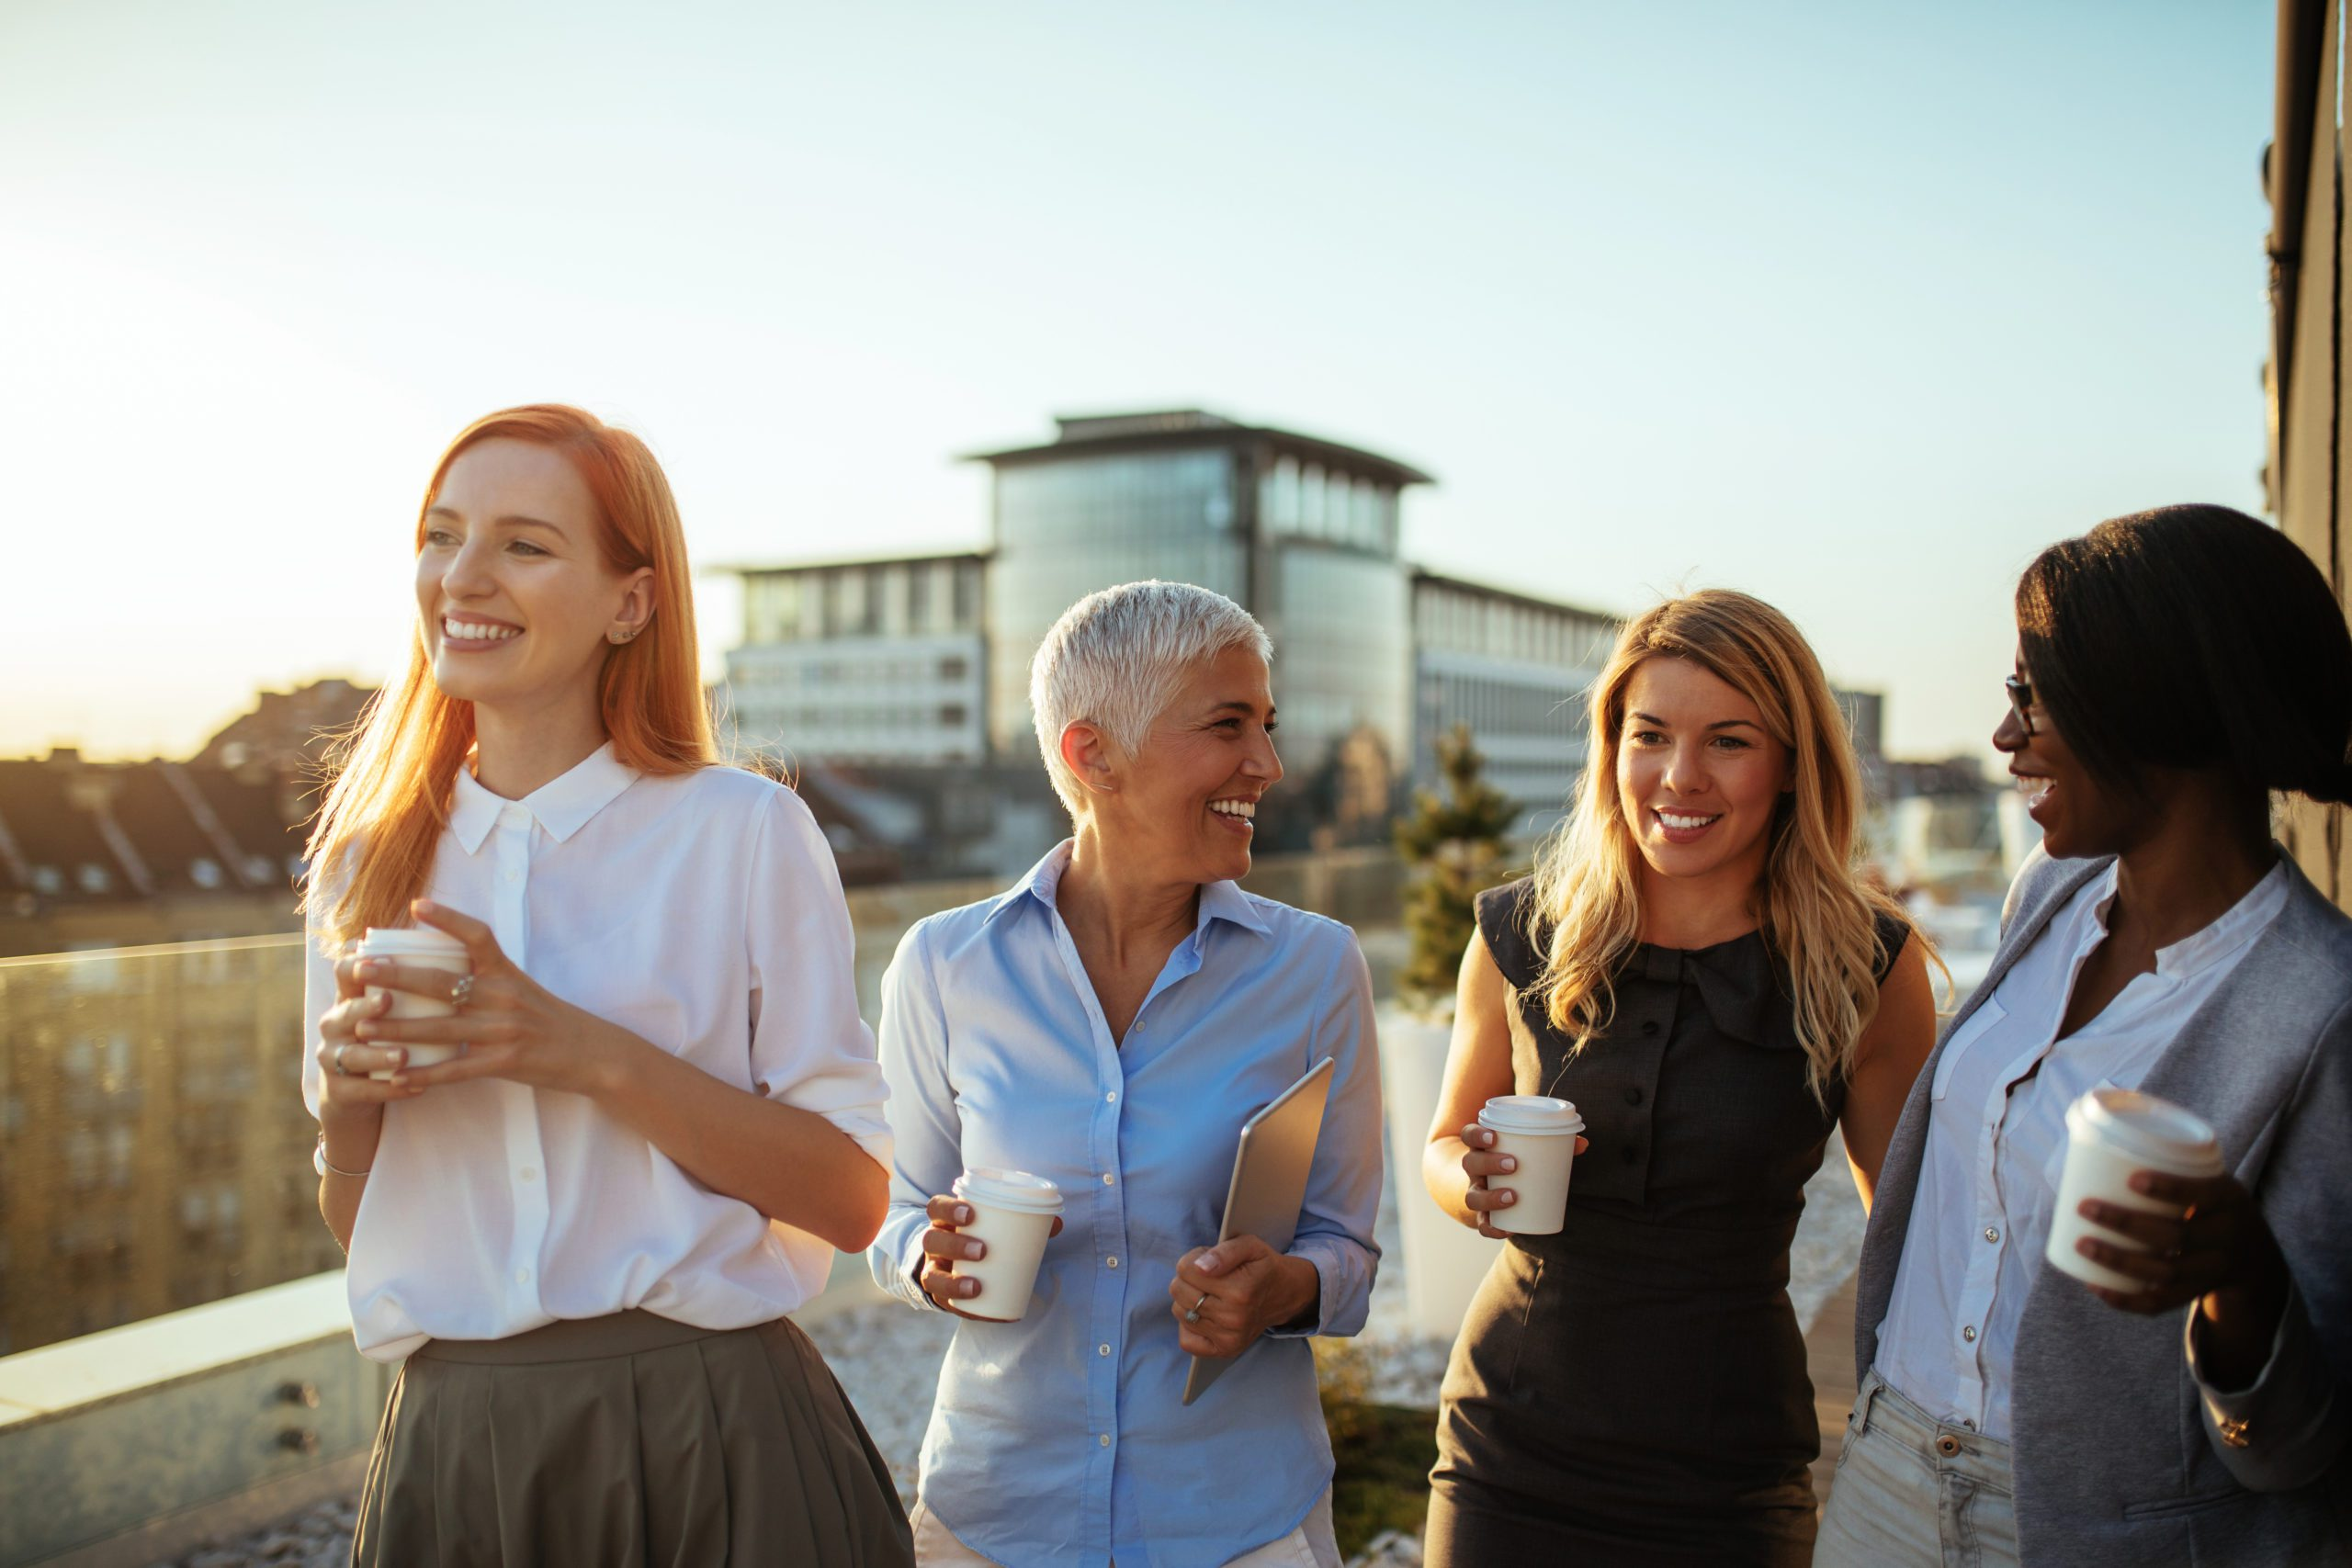 Group of businesswomen on the rooftop holding paper cups laughing